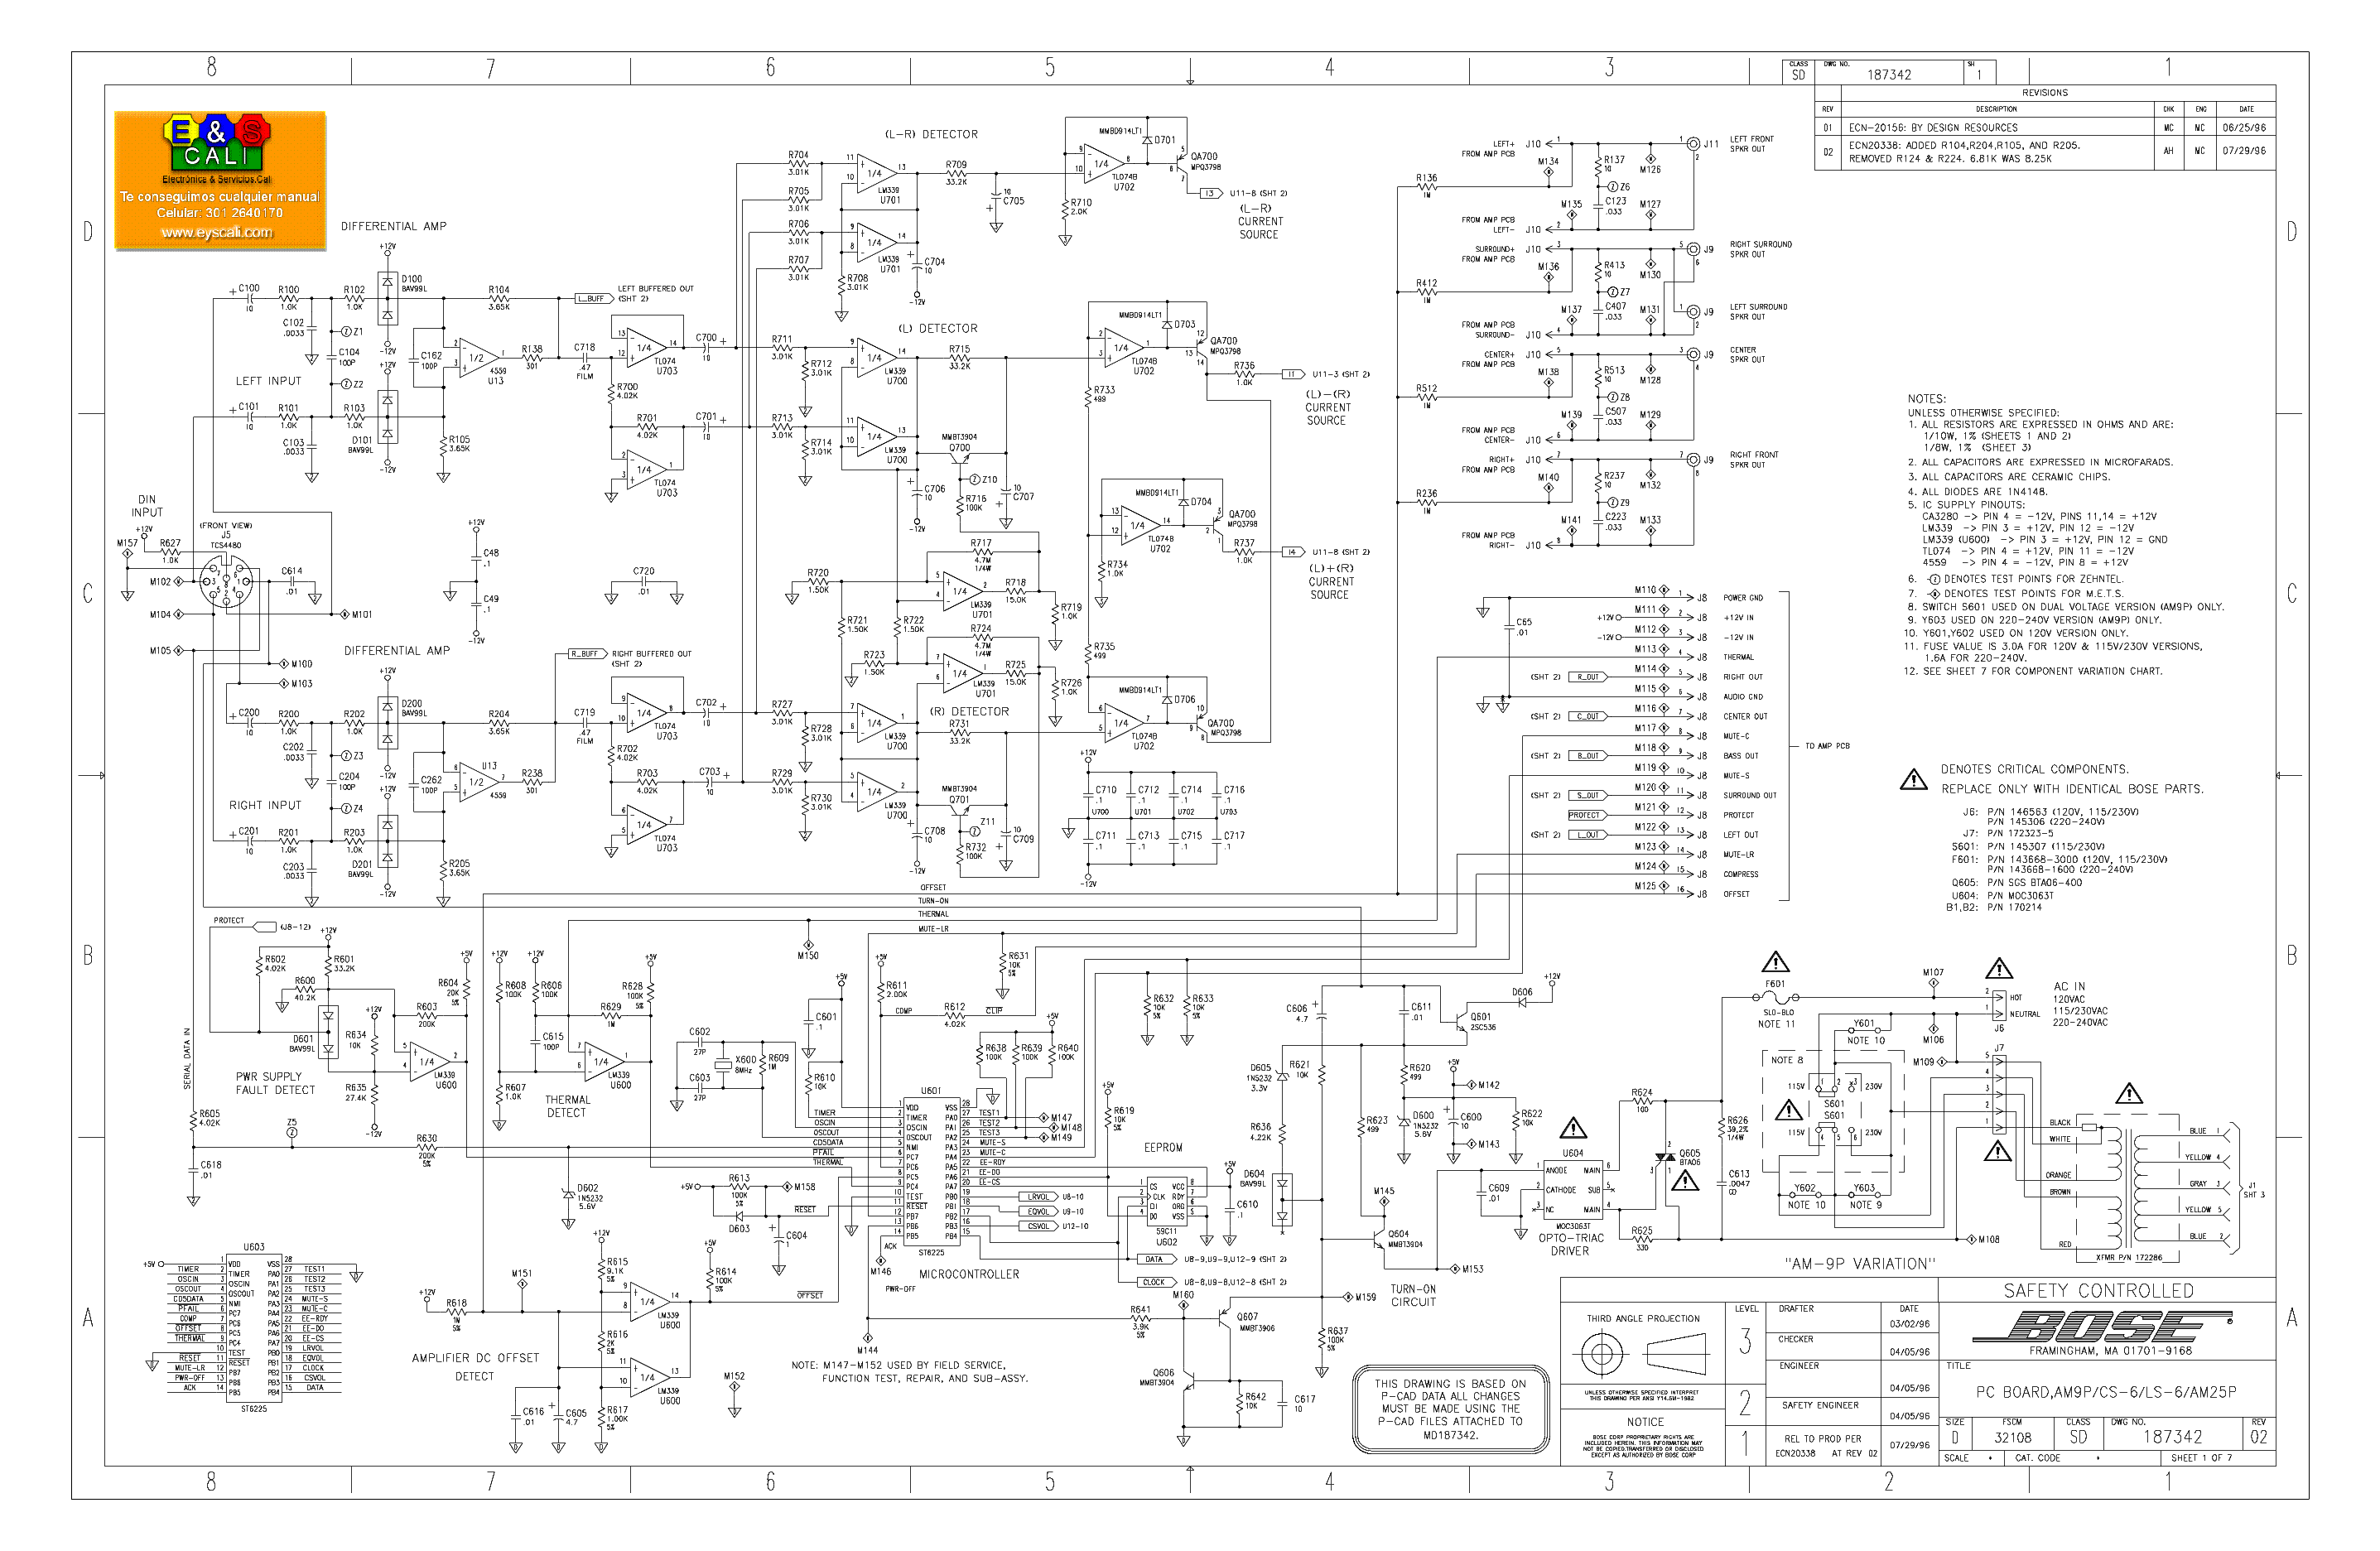 Bose Lifestyle Wiring Schematic - Free Vehicle Wiring Diagrams •